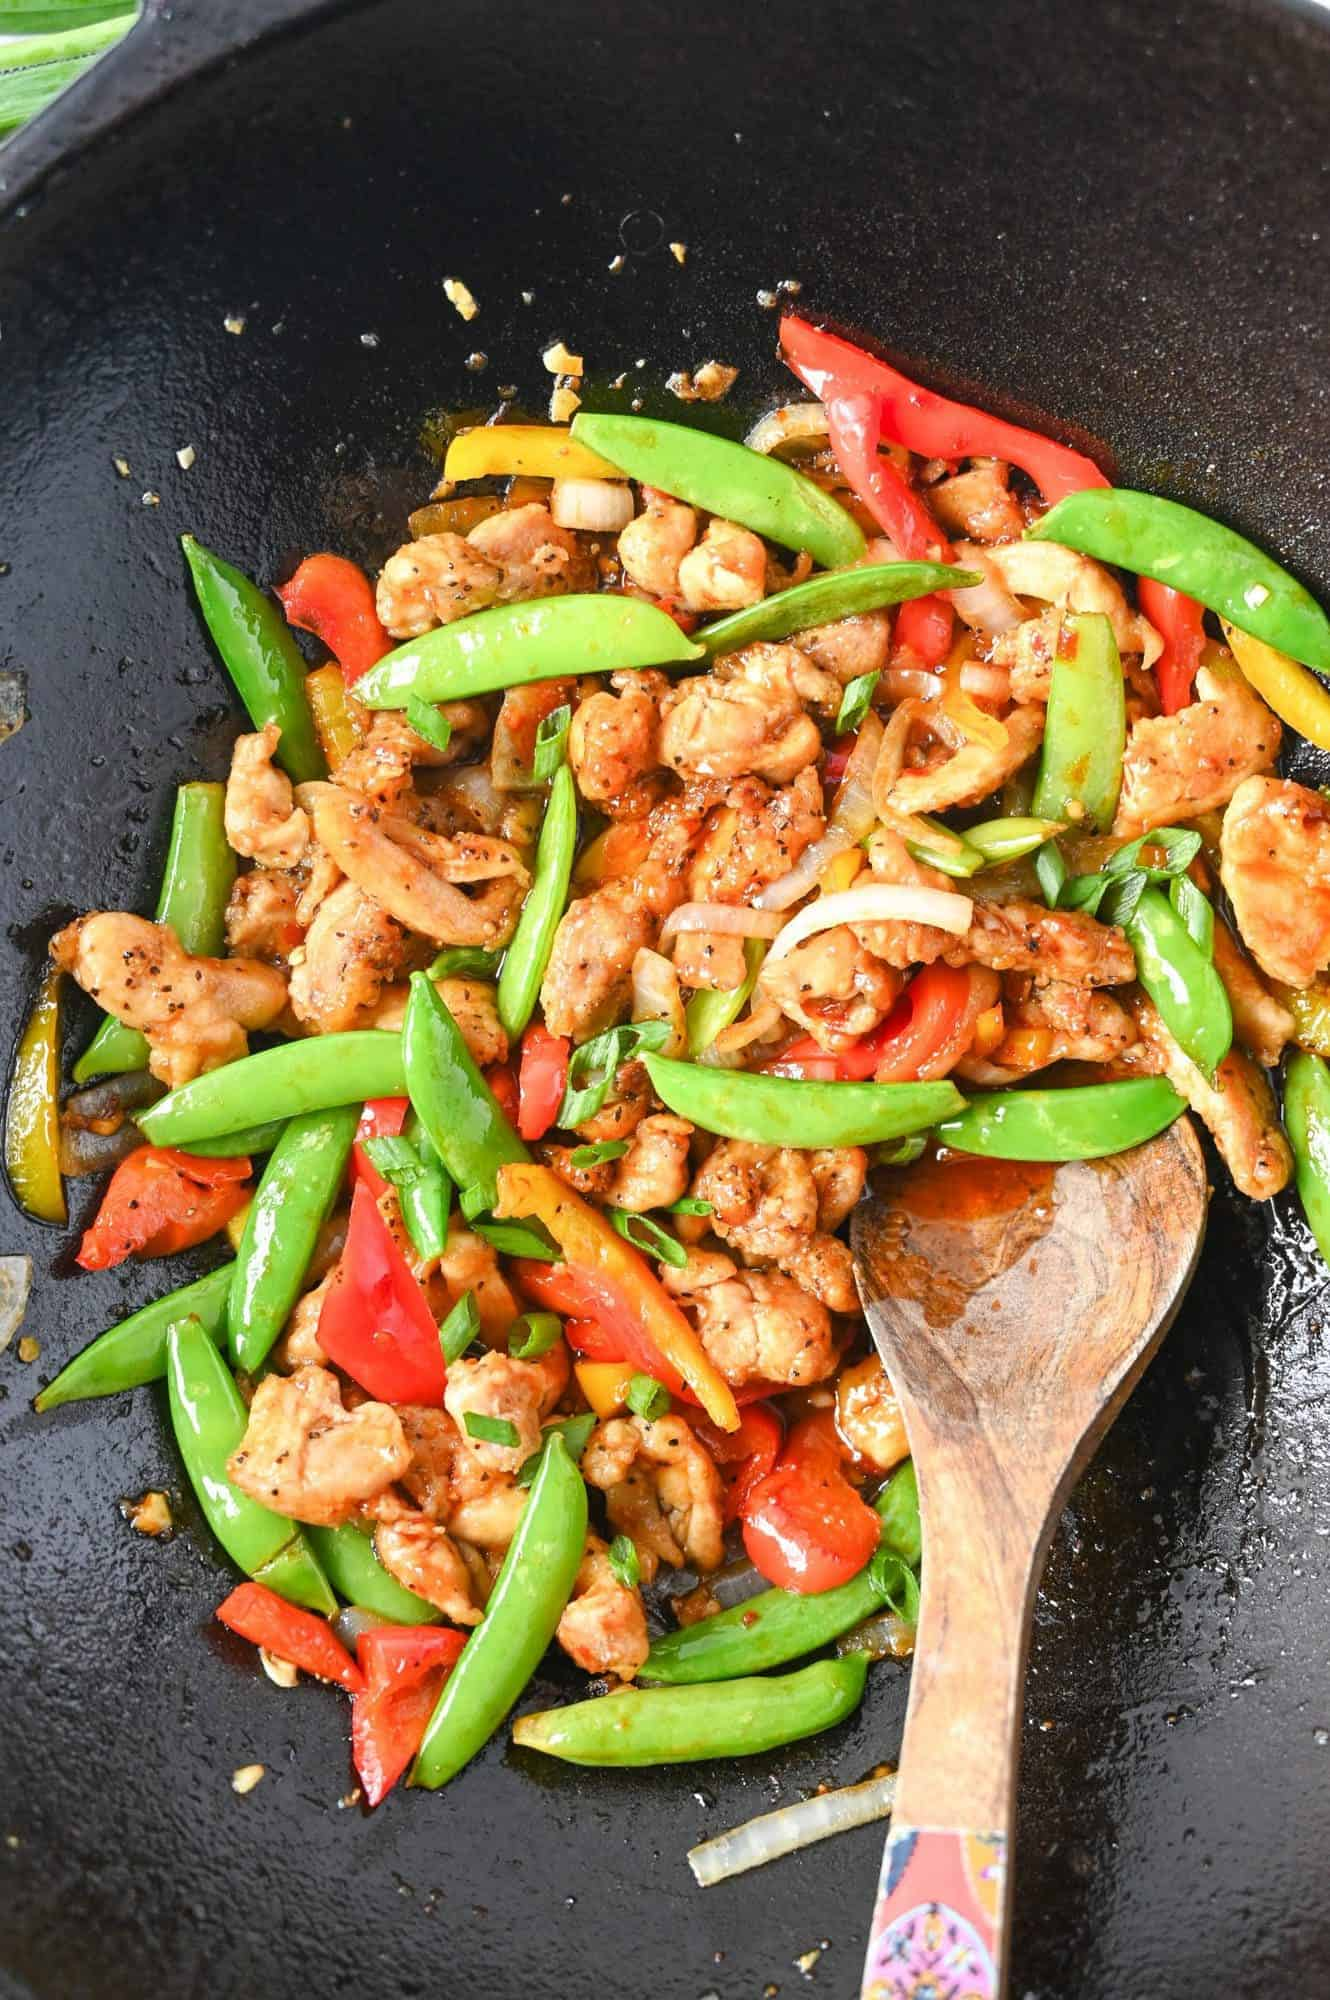 Sweet n spicy chicken stir fry in a cast iron wok and a wooden spoon.